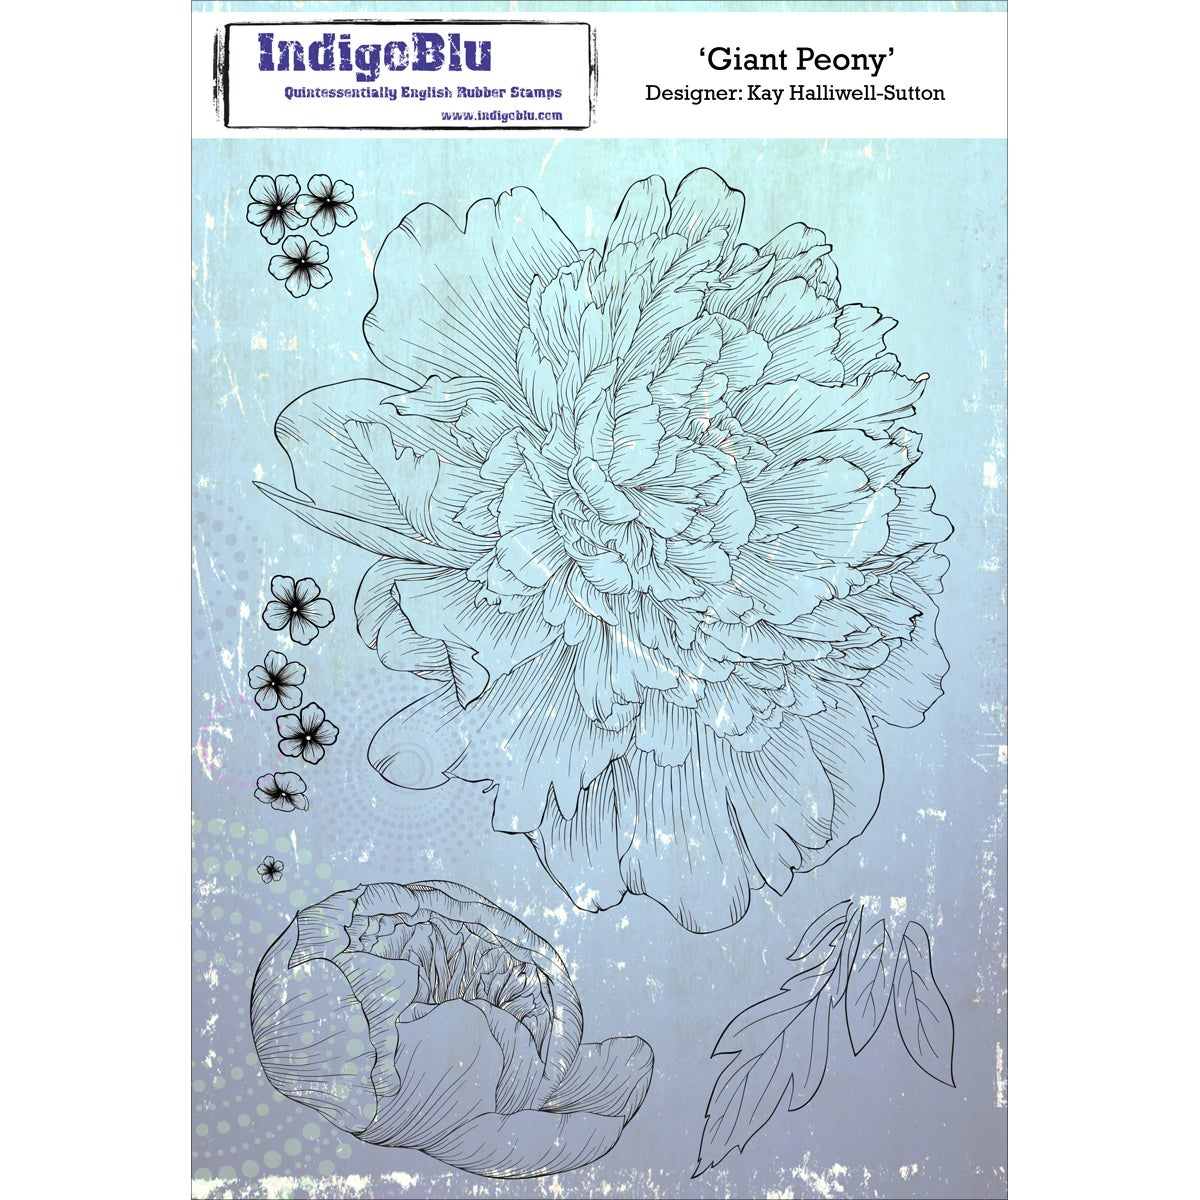 Twit Twoo IndigoBlu Cling Mounted Stamp 5 by 4-Inch